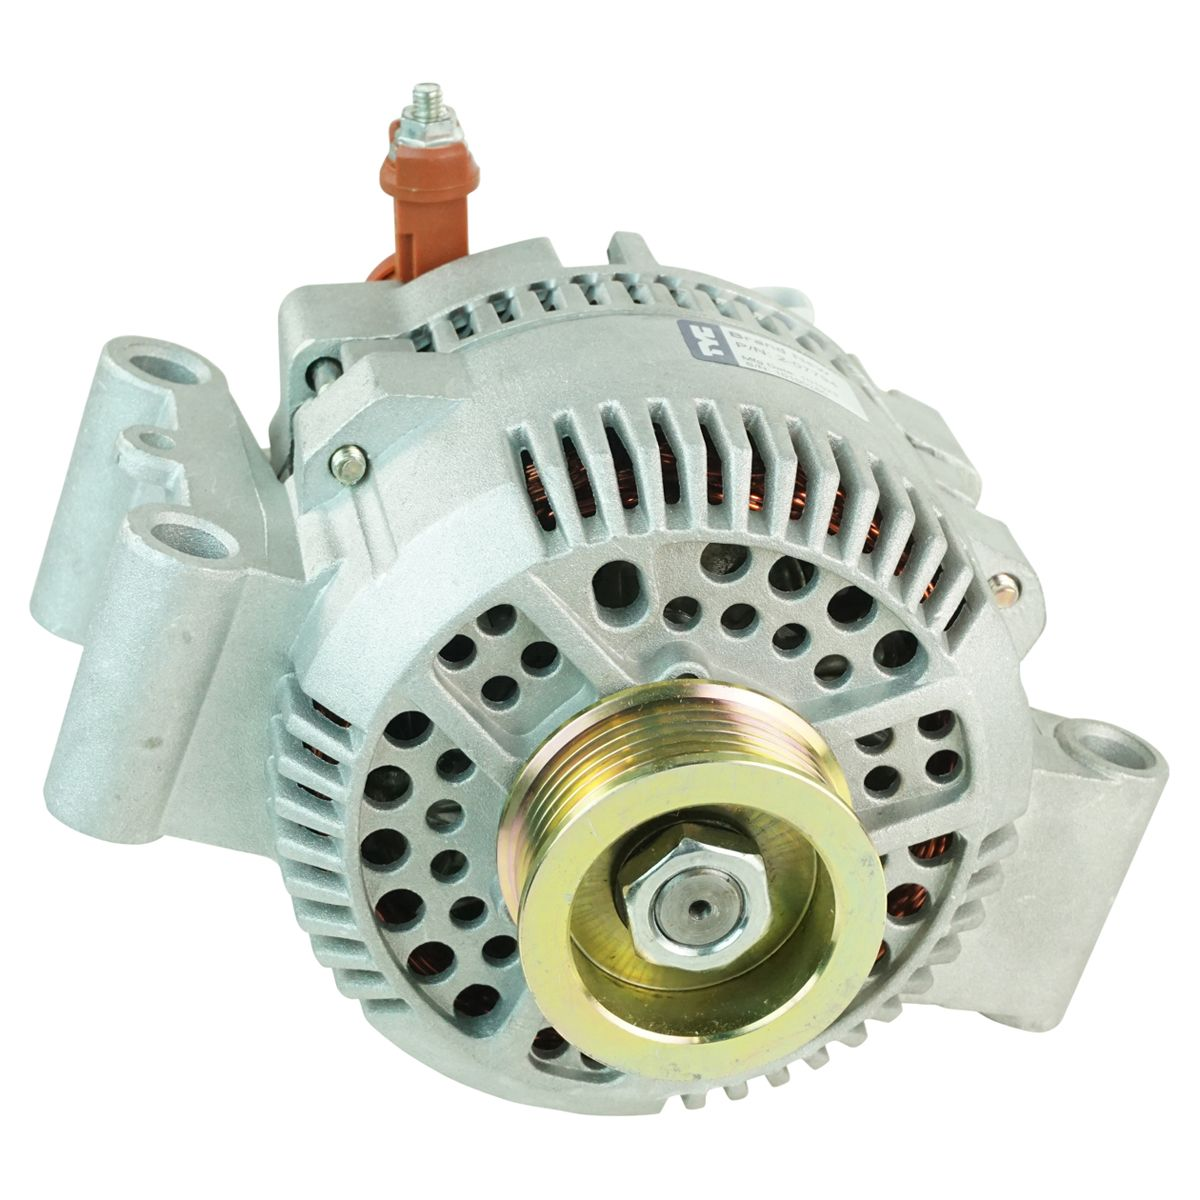 2003 ford escort zx2 alternator